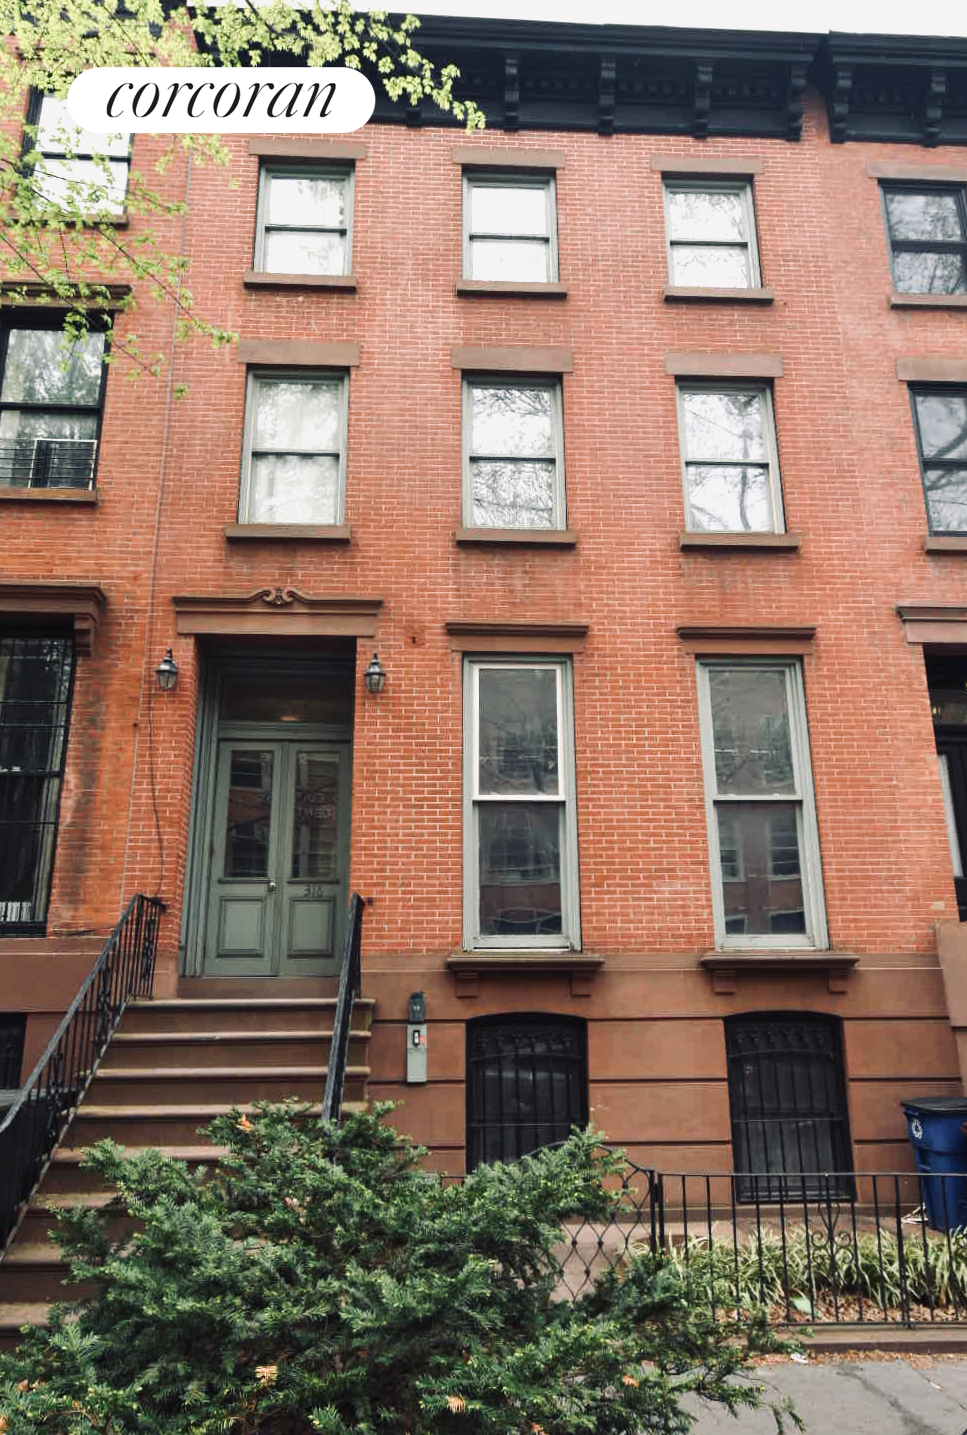 316 Carlton Avenue, 22' wide landmarked townhouse